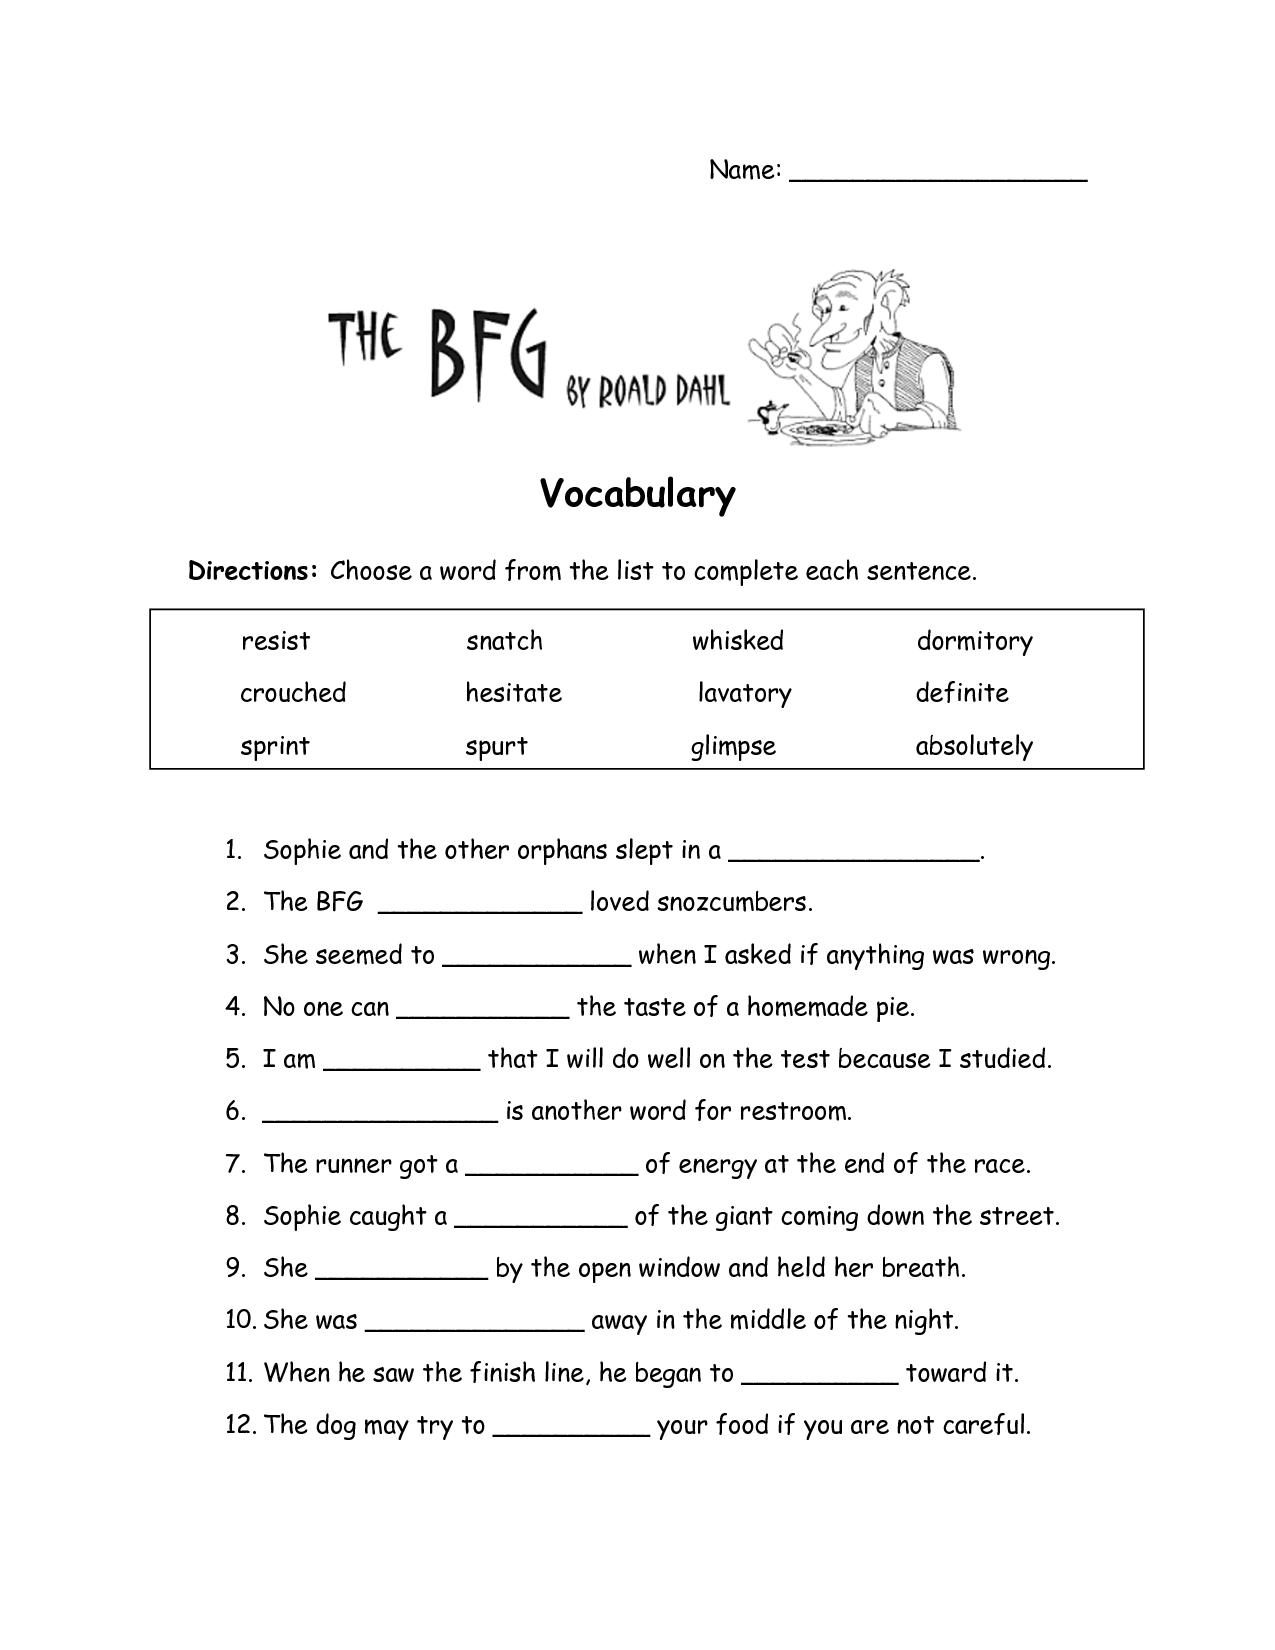 Printables Printable Vocabulary Worksheets 1000 images about education items on pinterest classroom activities reward coupons and science worksheets